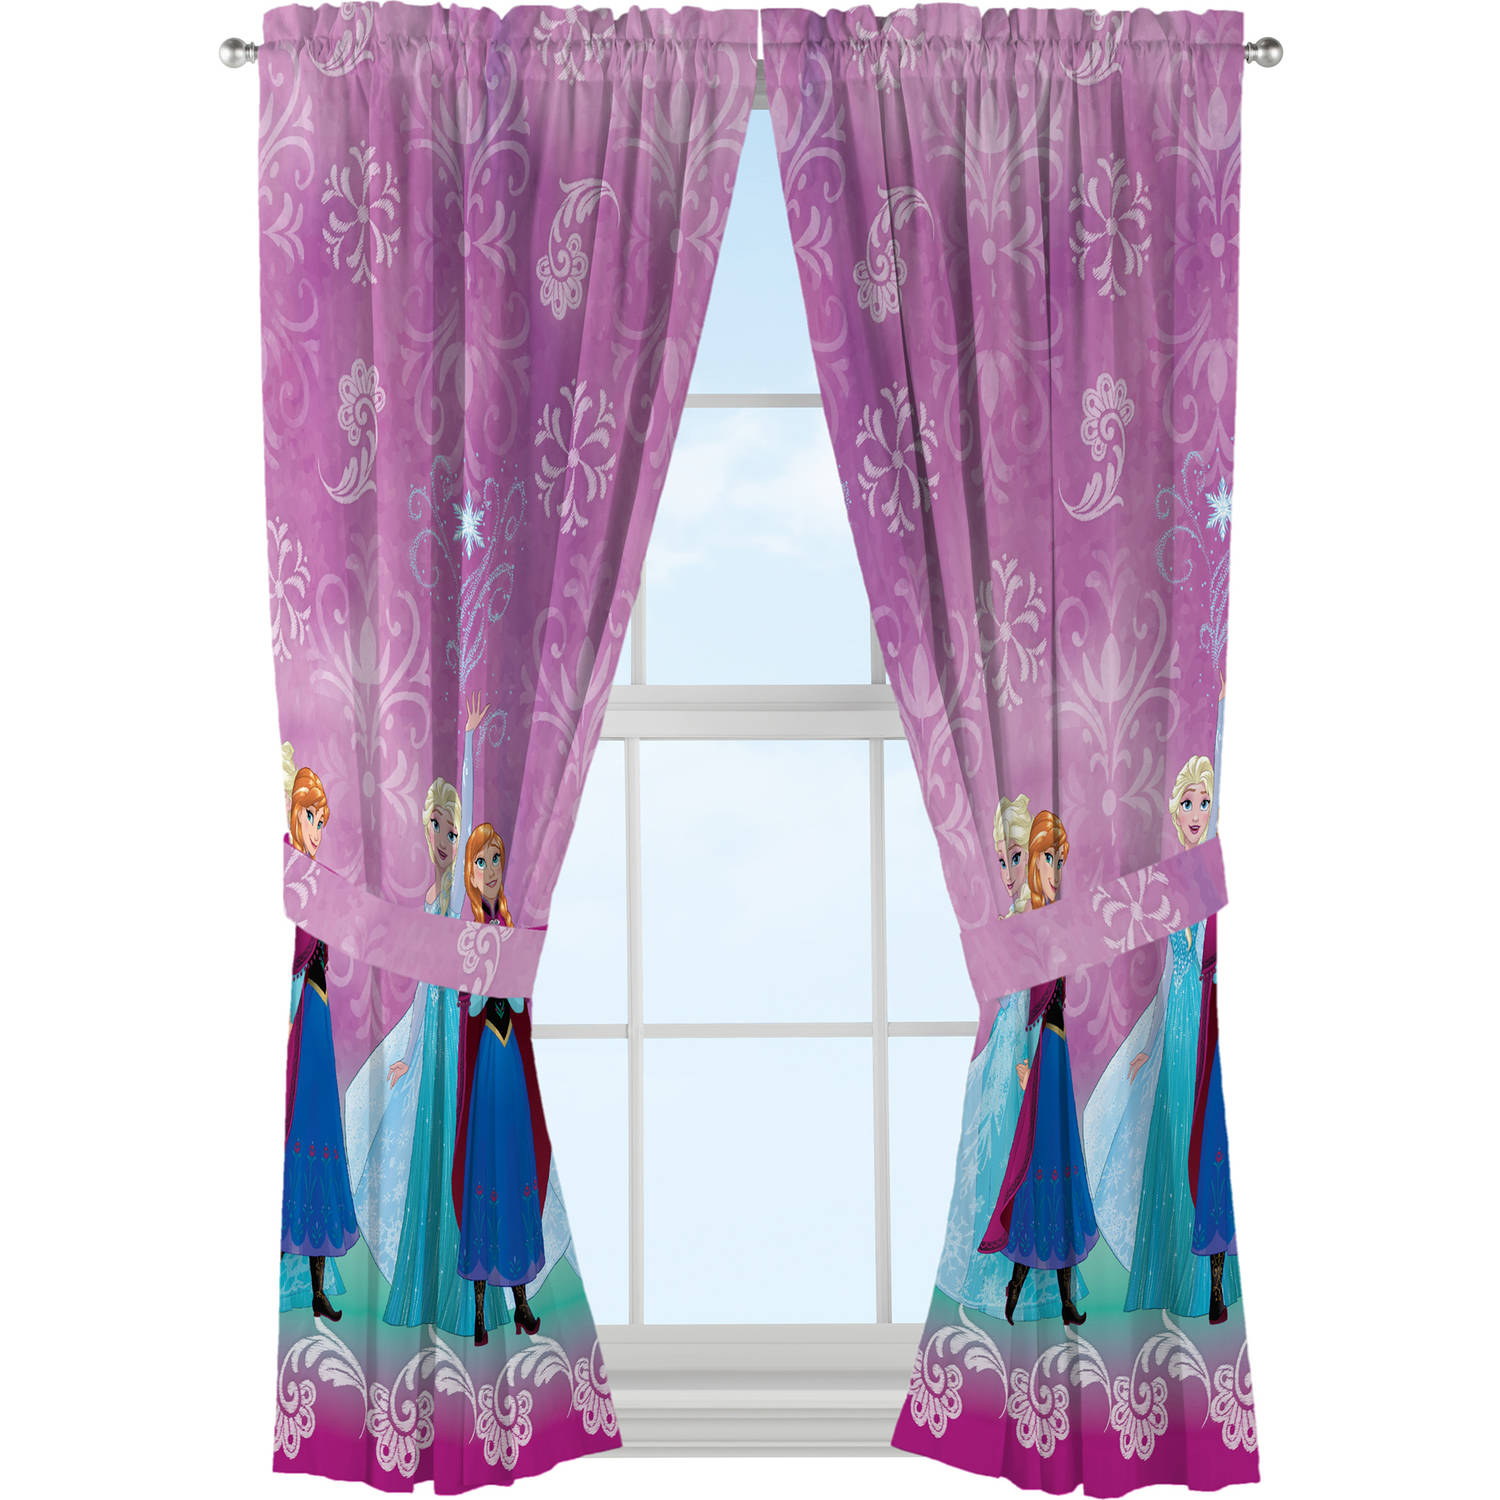 Disney's Frozen 'Nordic Wonder' Girls Bedroom Curtains by Franco